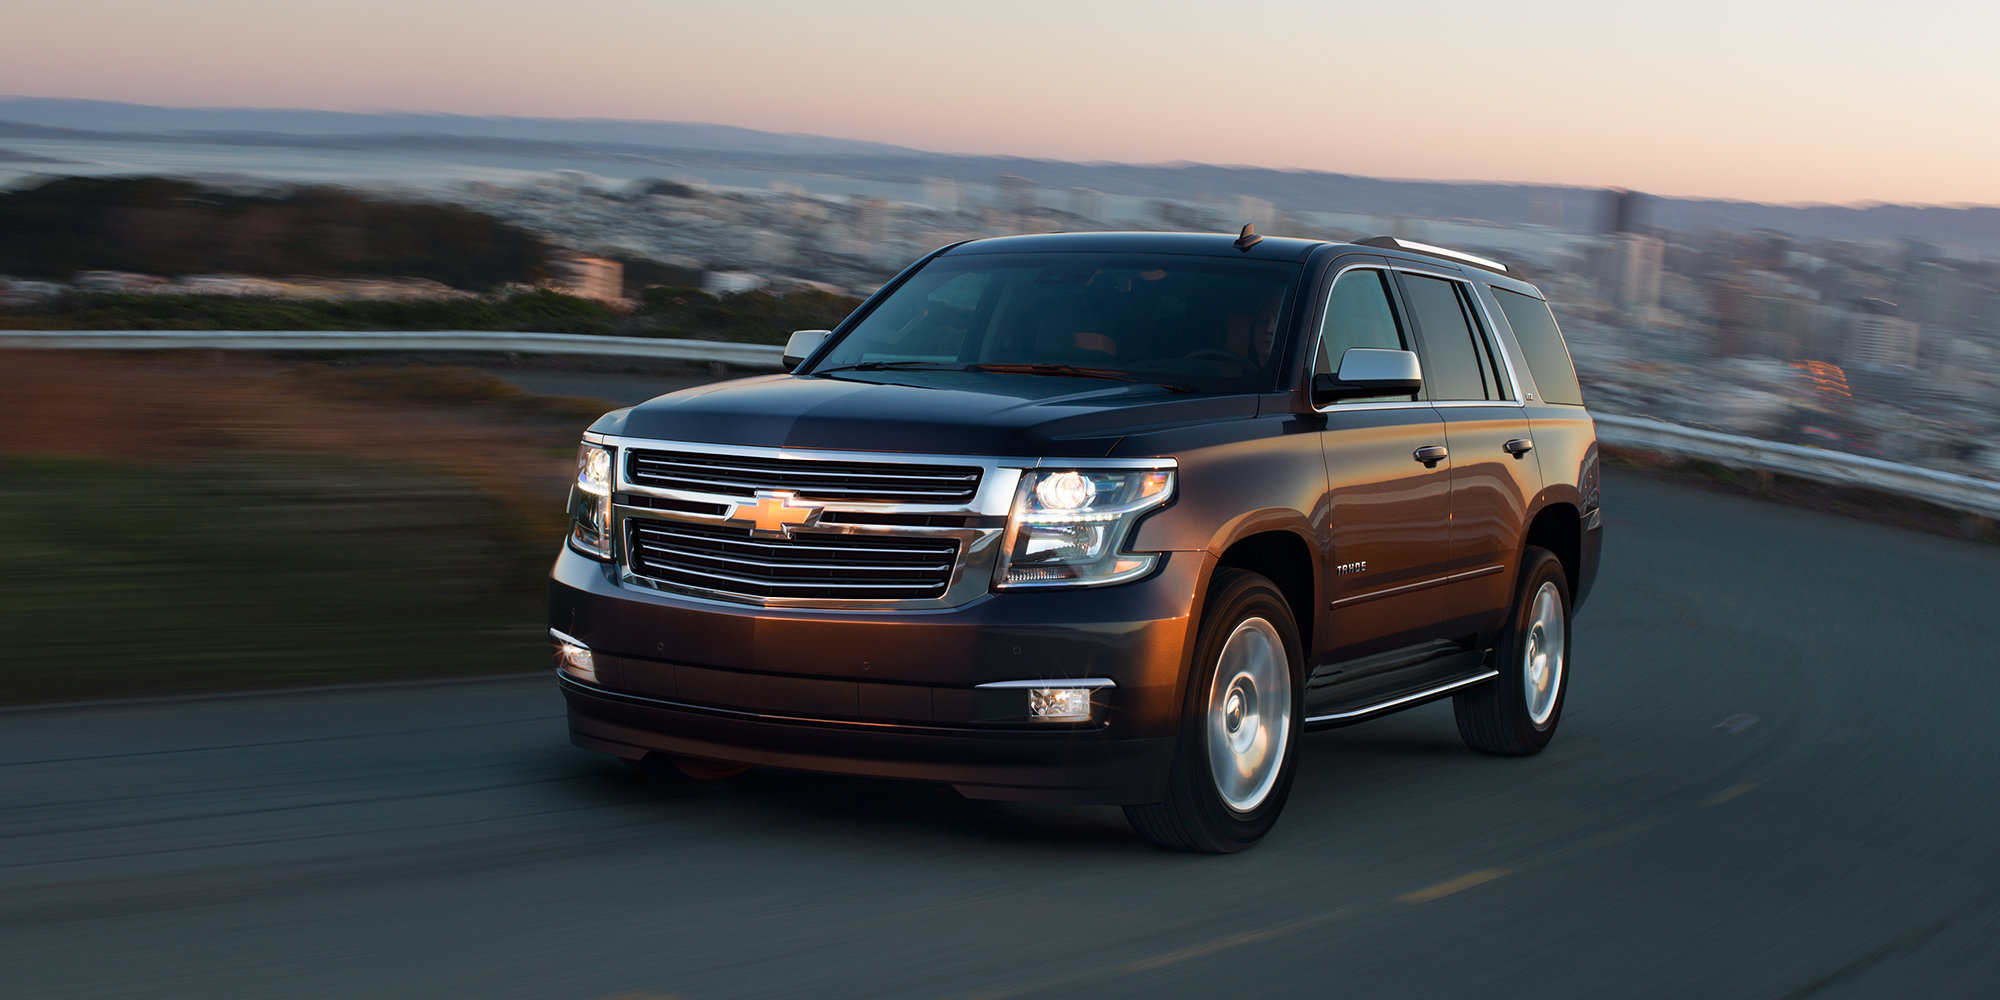 2018 Chevrolet Tahoe Trim Levels in Corinth Mississippi